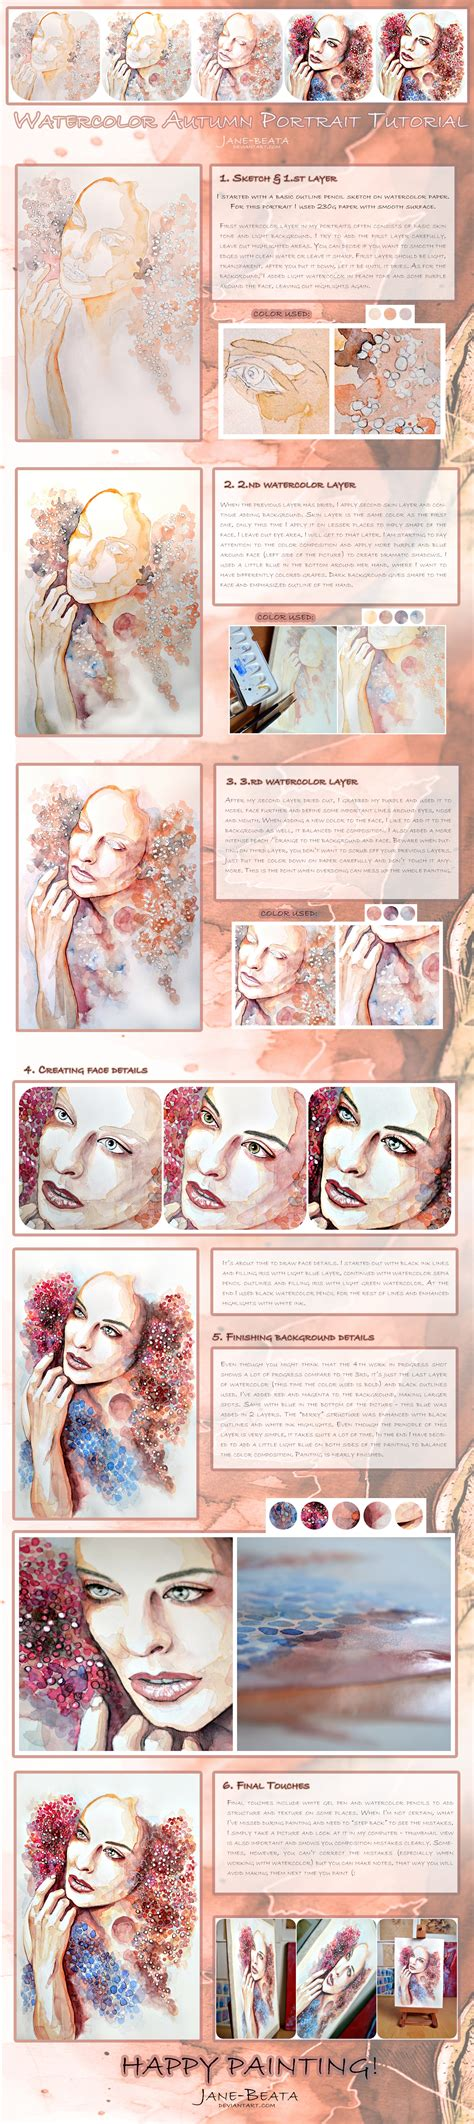 watercolor tutorial video download watercolor autumn portrait tutorial by jane beata on